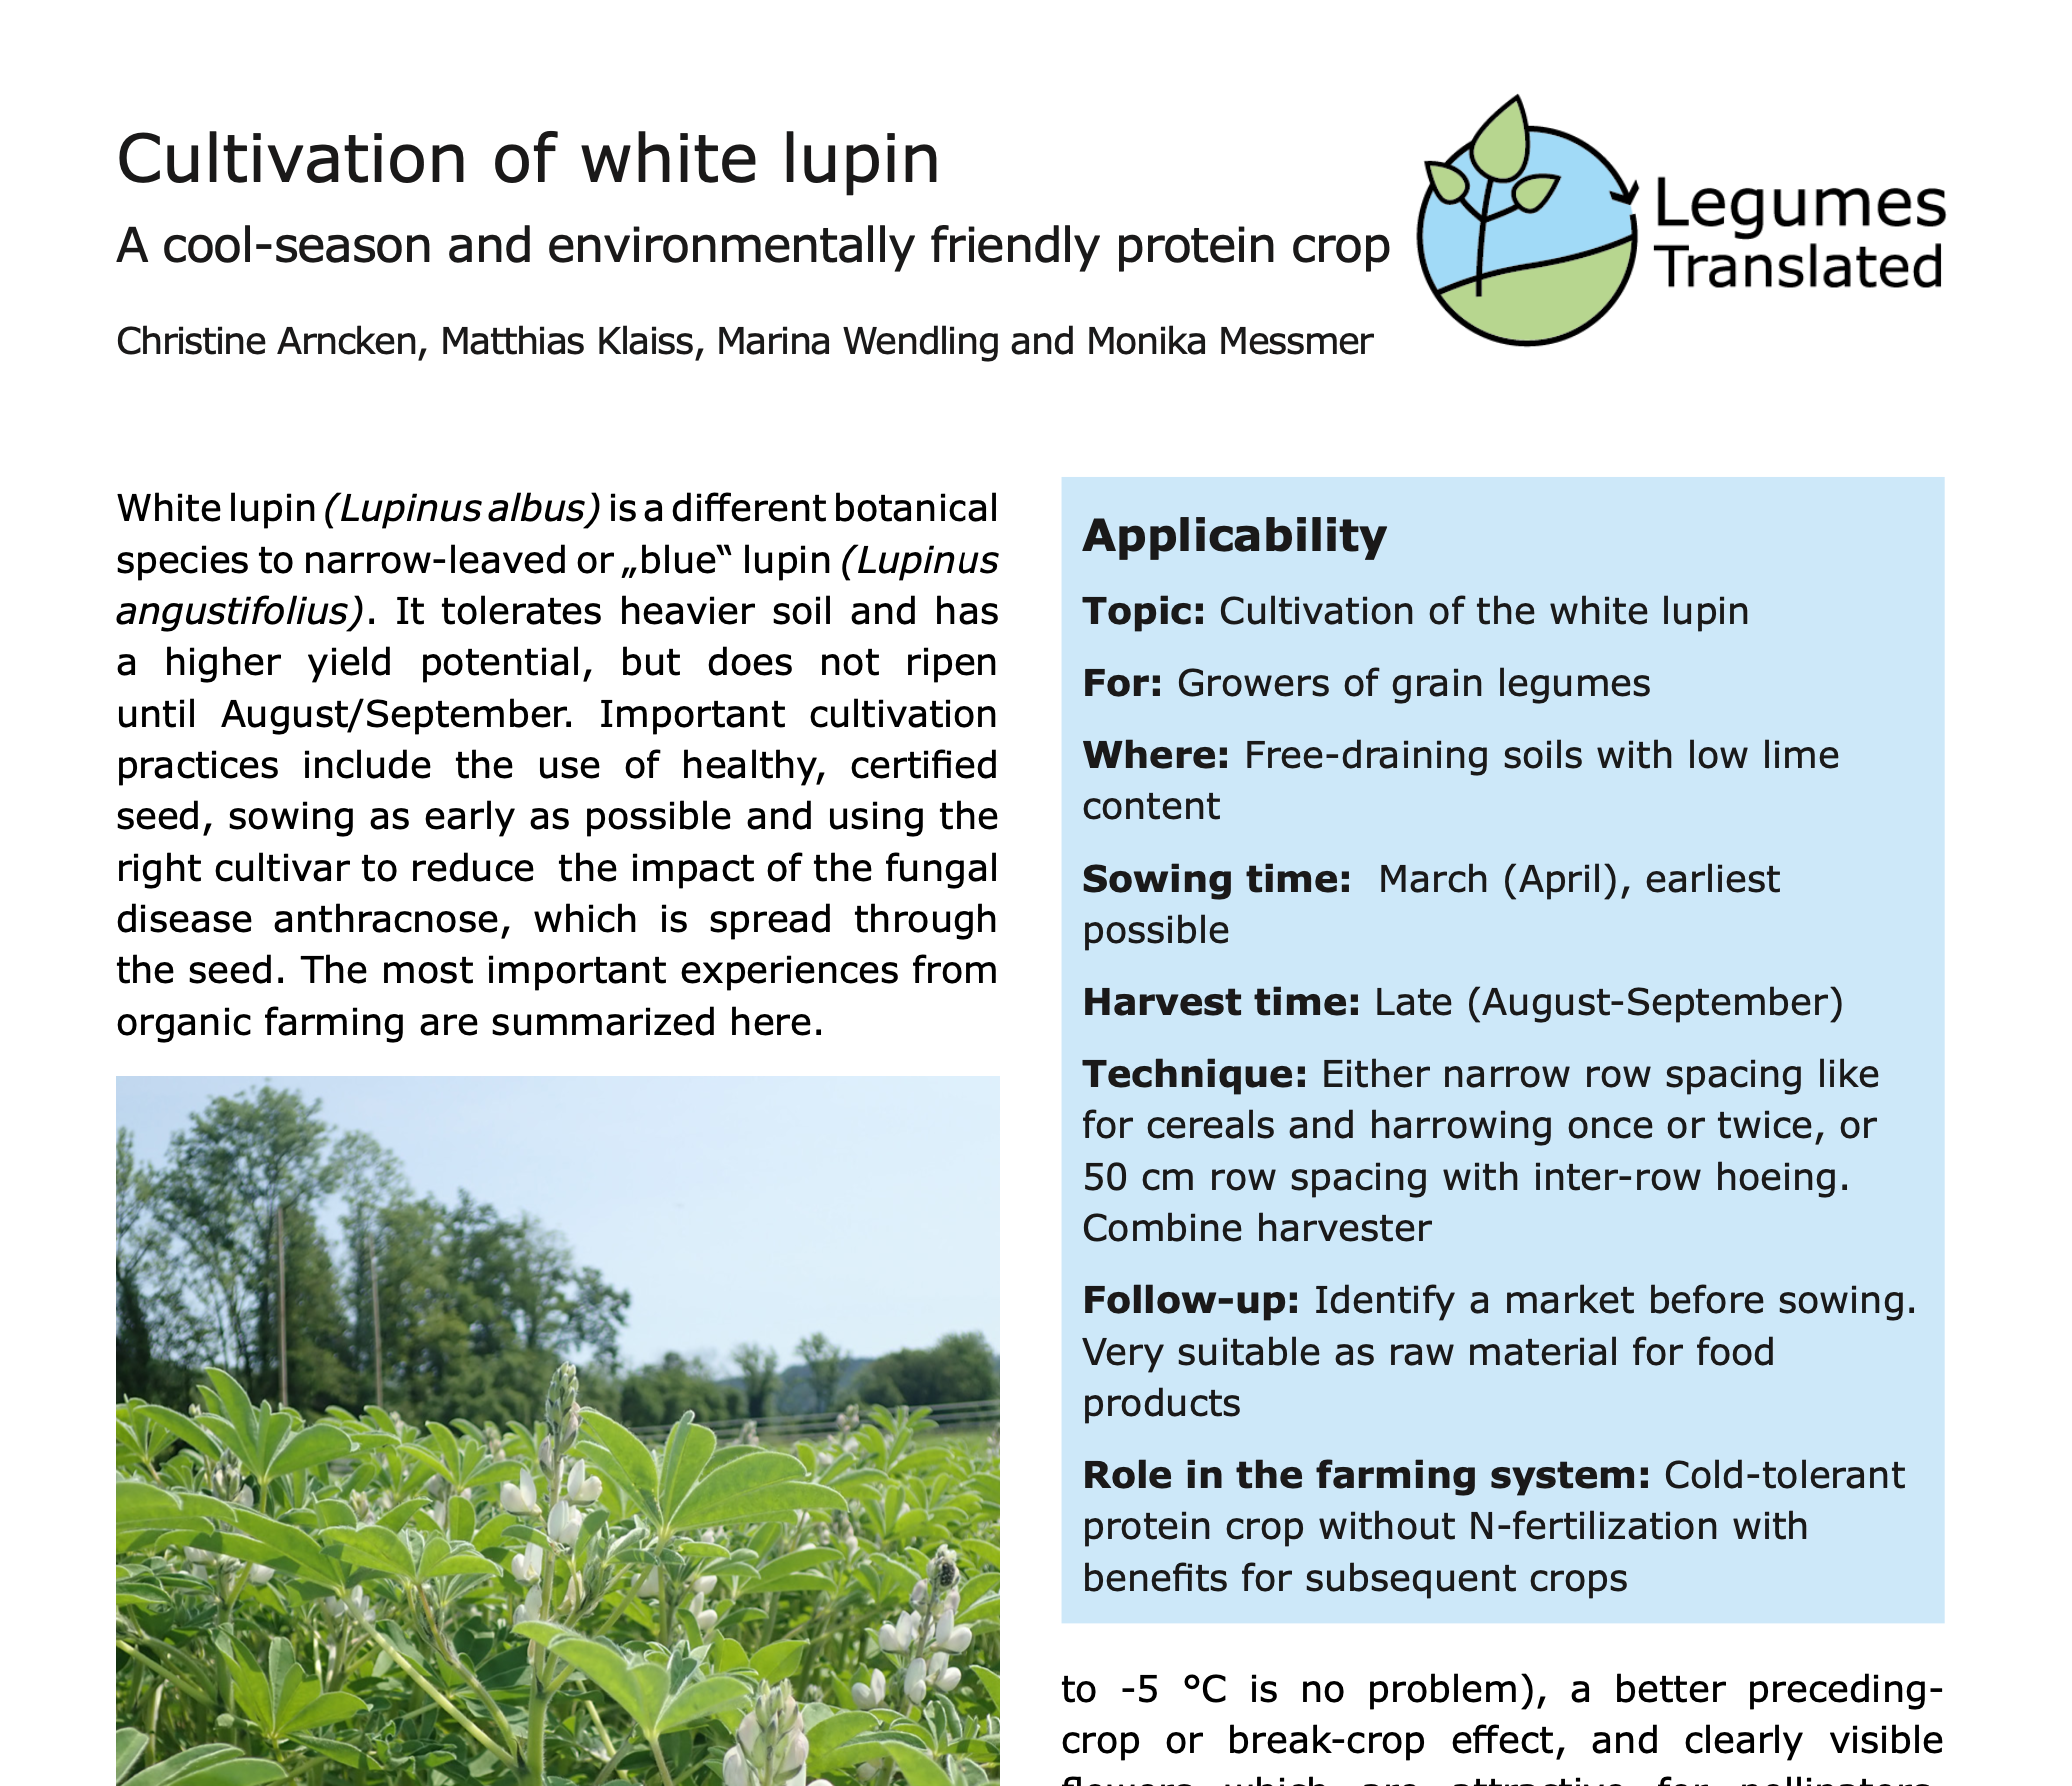 Cultivation of white lupin – a cool-season and environmentally friendly protein crop